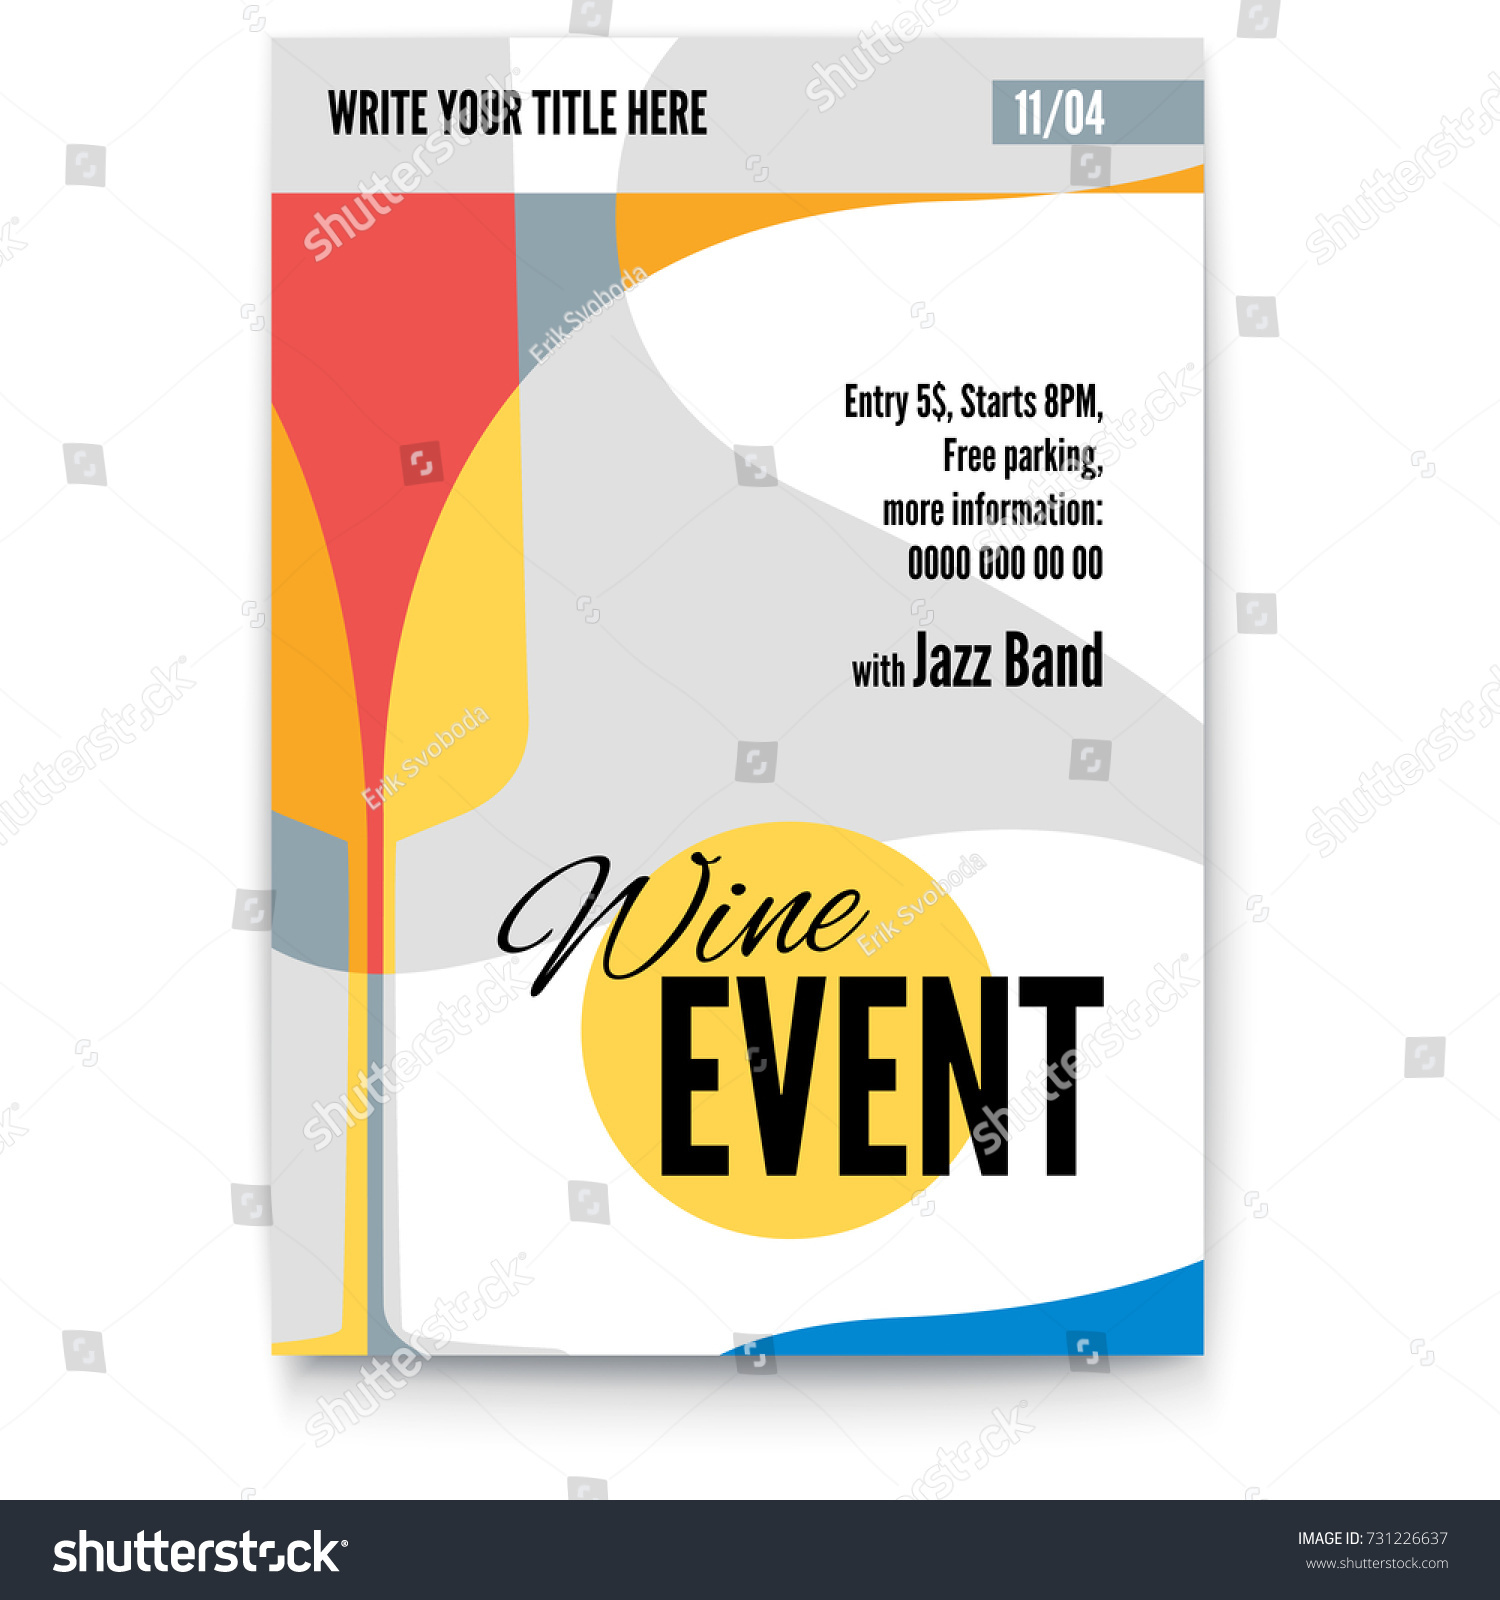 excellent poster design free template pictures inspiration, Presentation templates